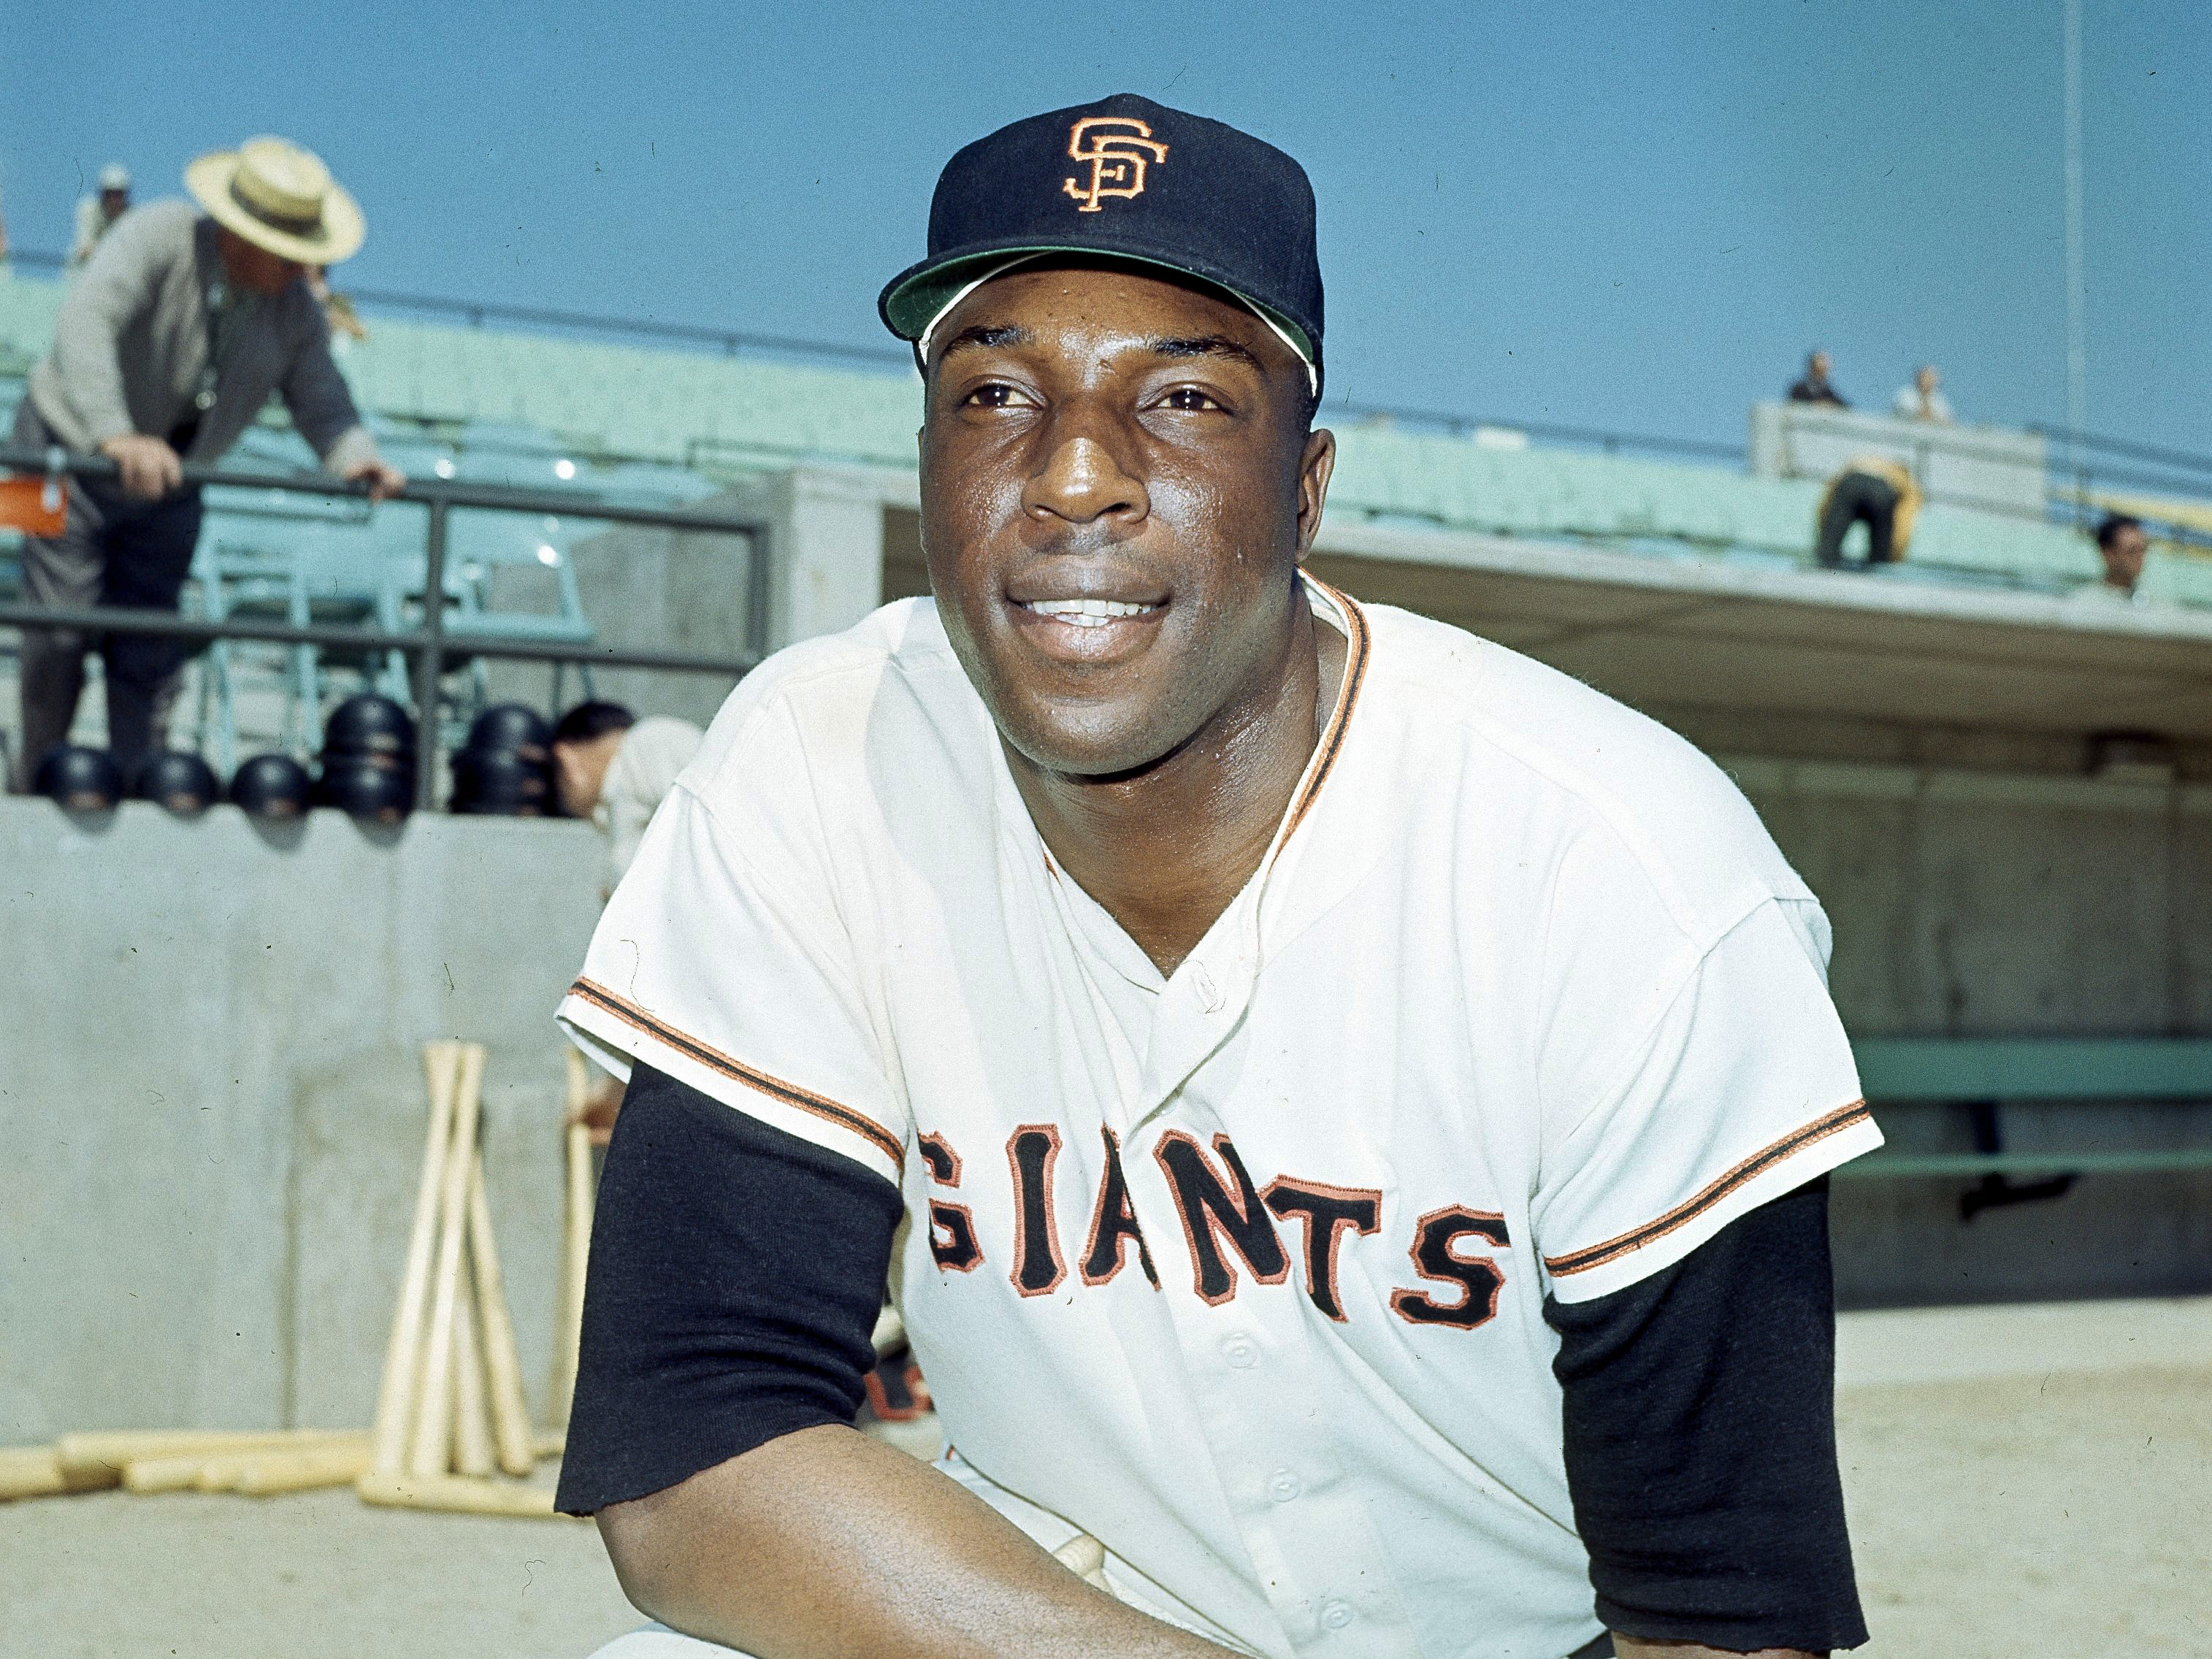 Willie McCovey of the San Francisco Giants pictured in April 1966 near the height of his 21 year career. He pleaded guilty to tax evasion in 1995 and was pardoned by President Obama. AP